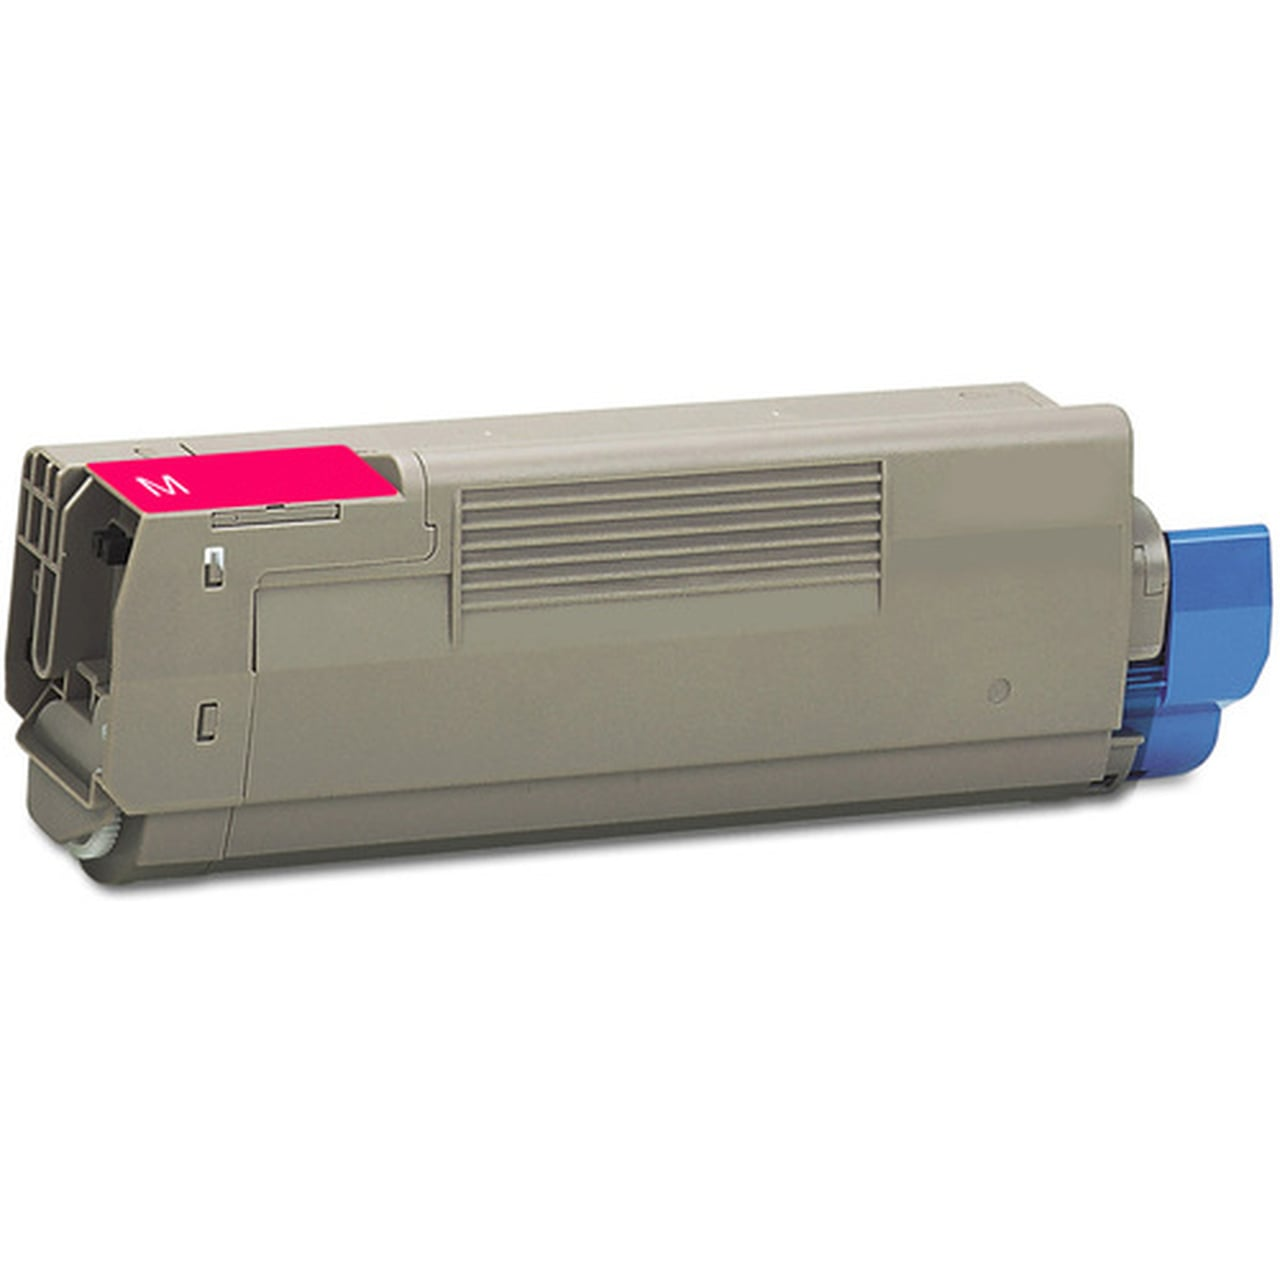 43487734 Toner Cartridge - Okidata Remanufactured (Magenta)